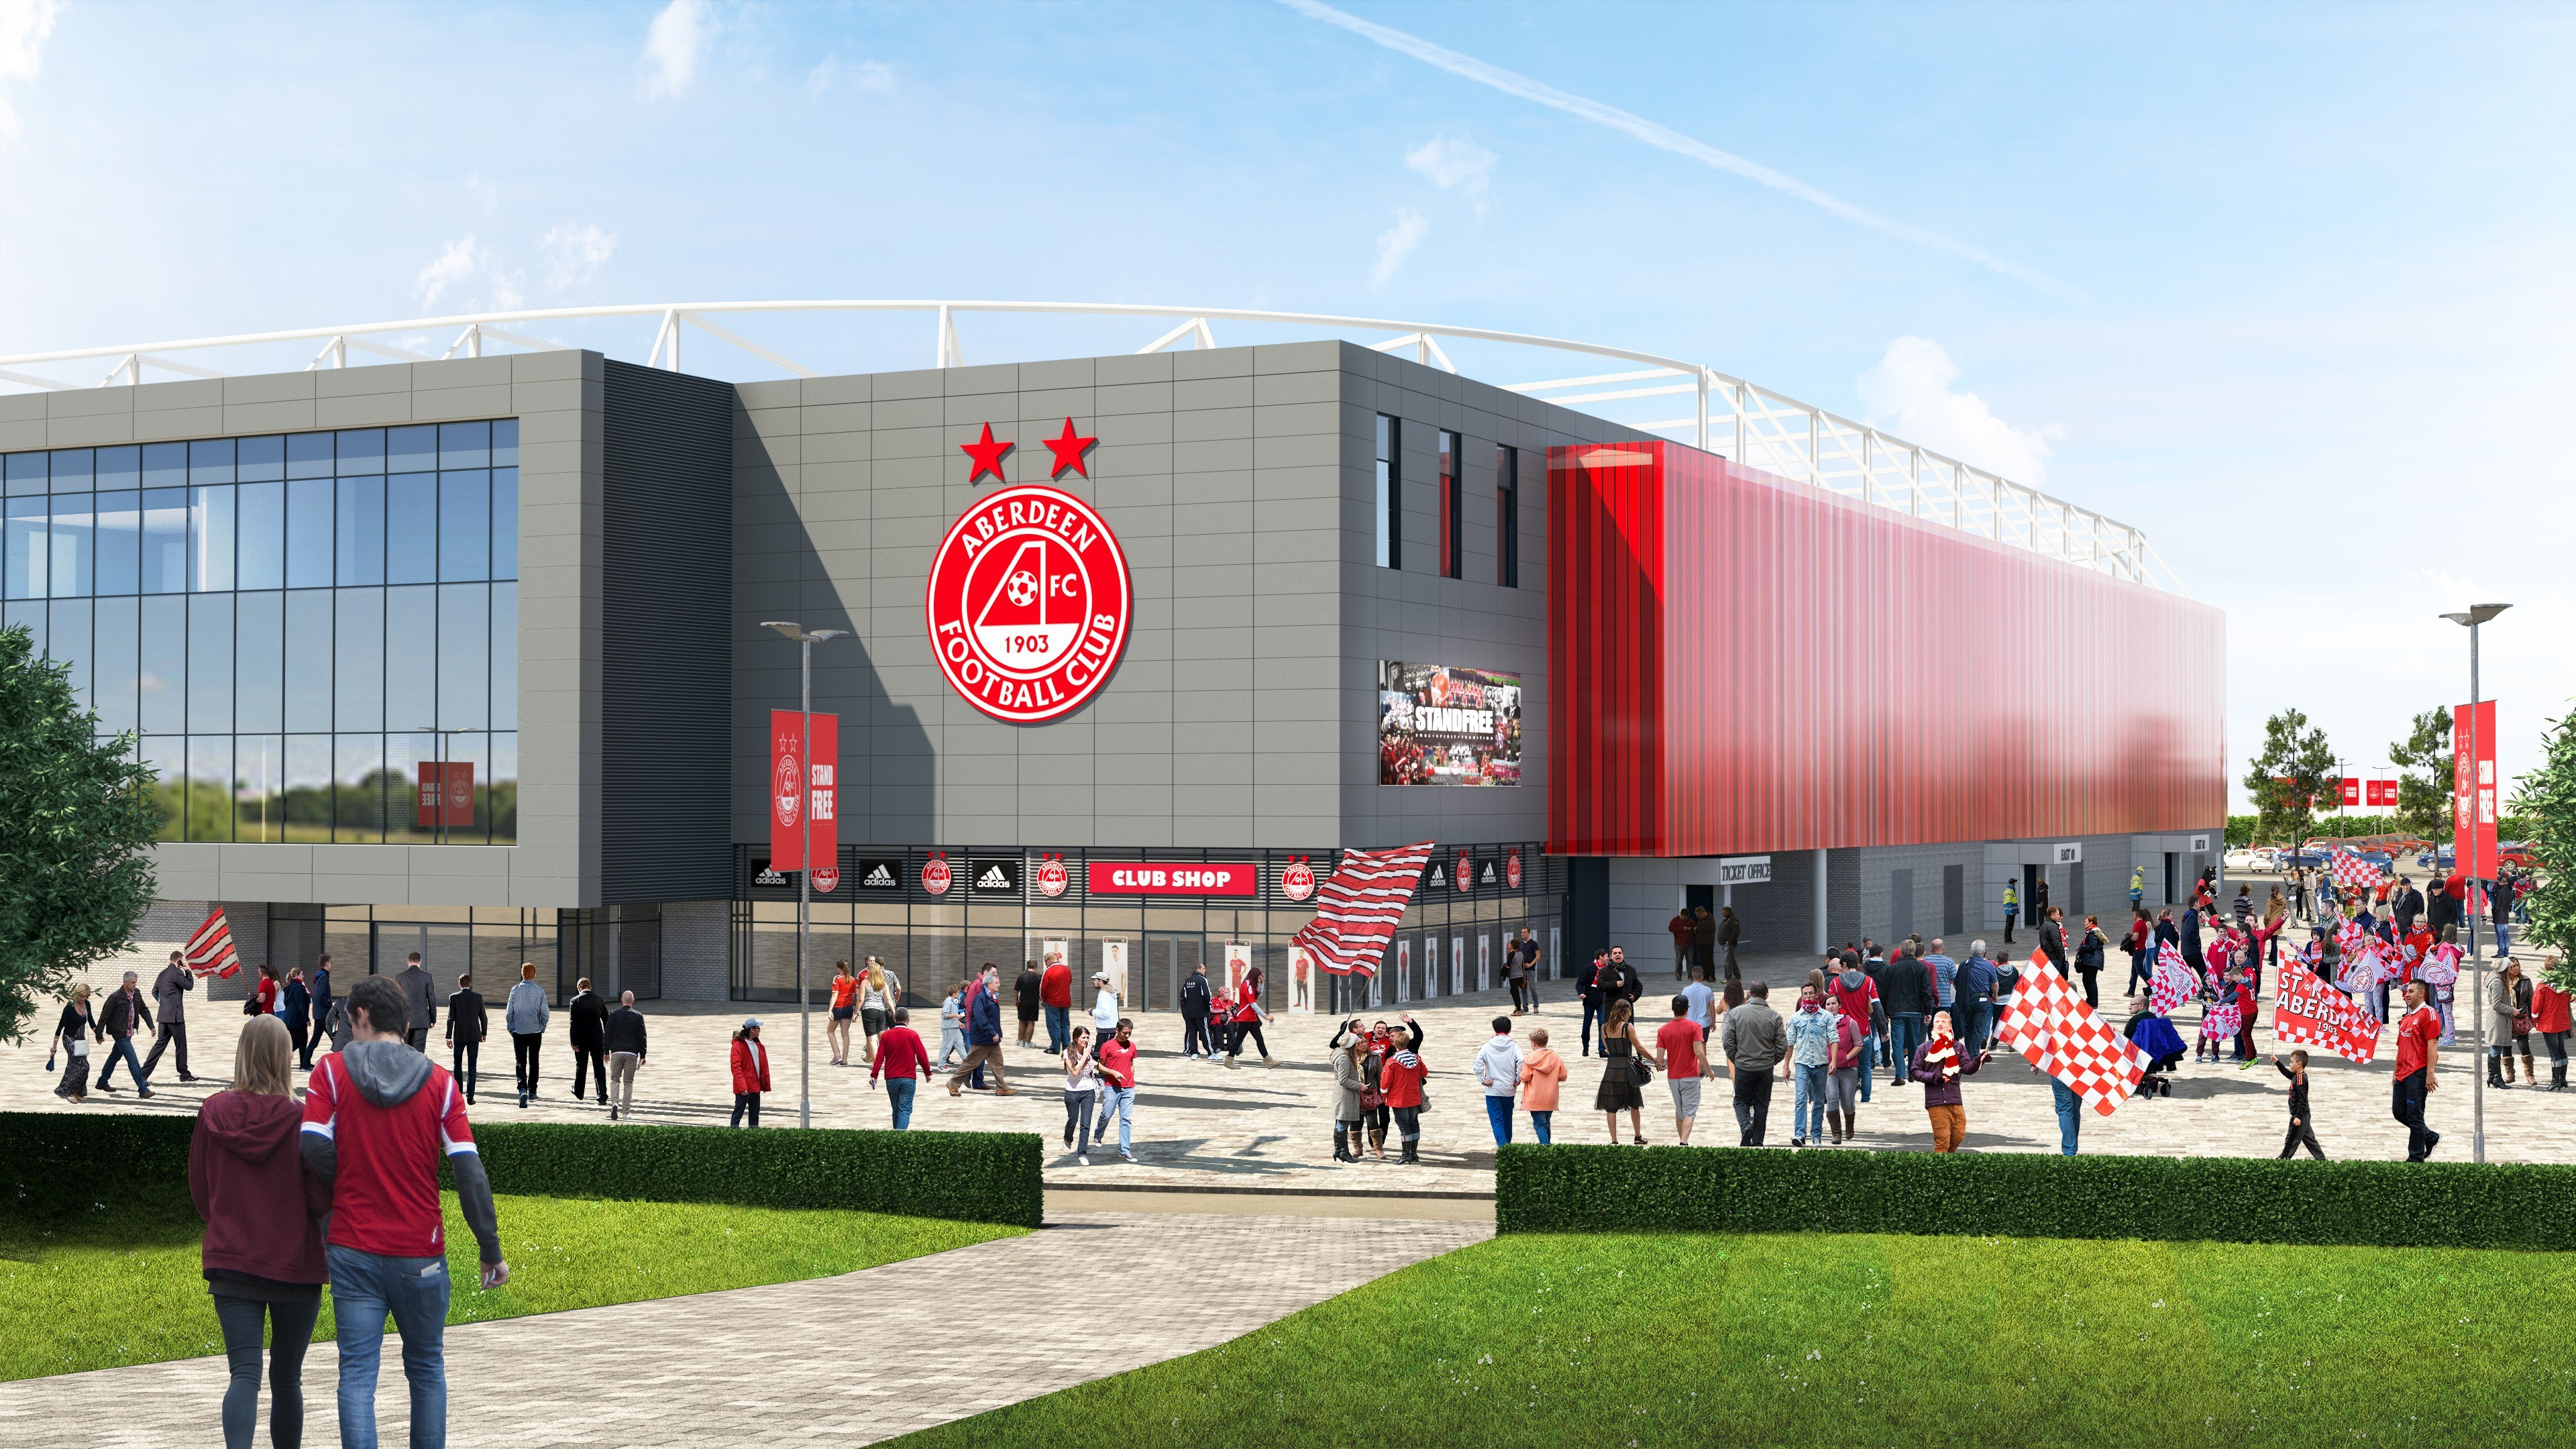 The exterior of the new Aberdeen FC stadium that is expected to cost £50m.